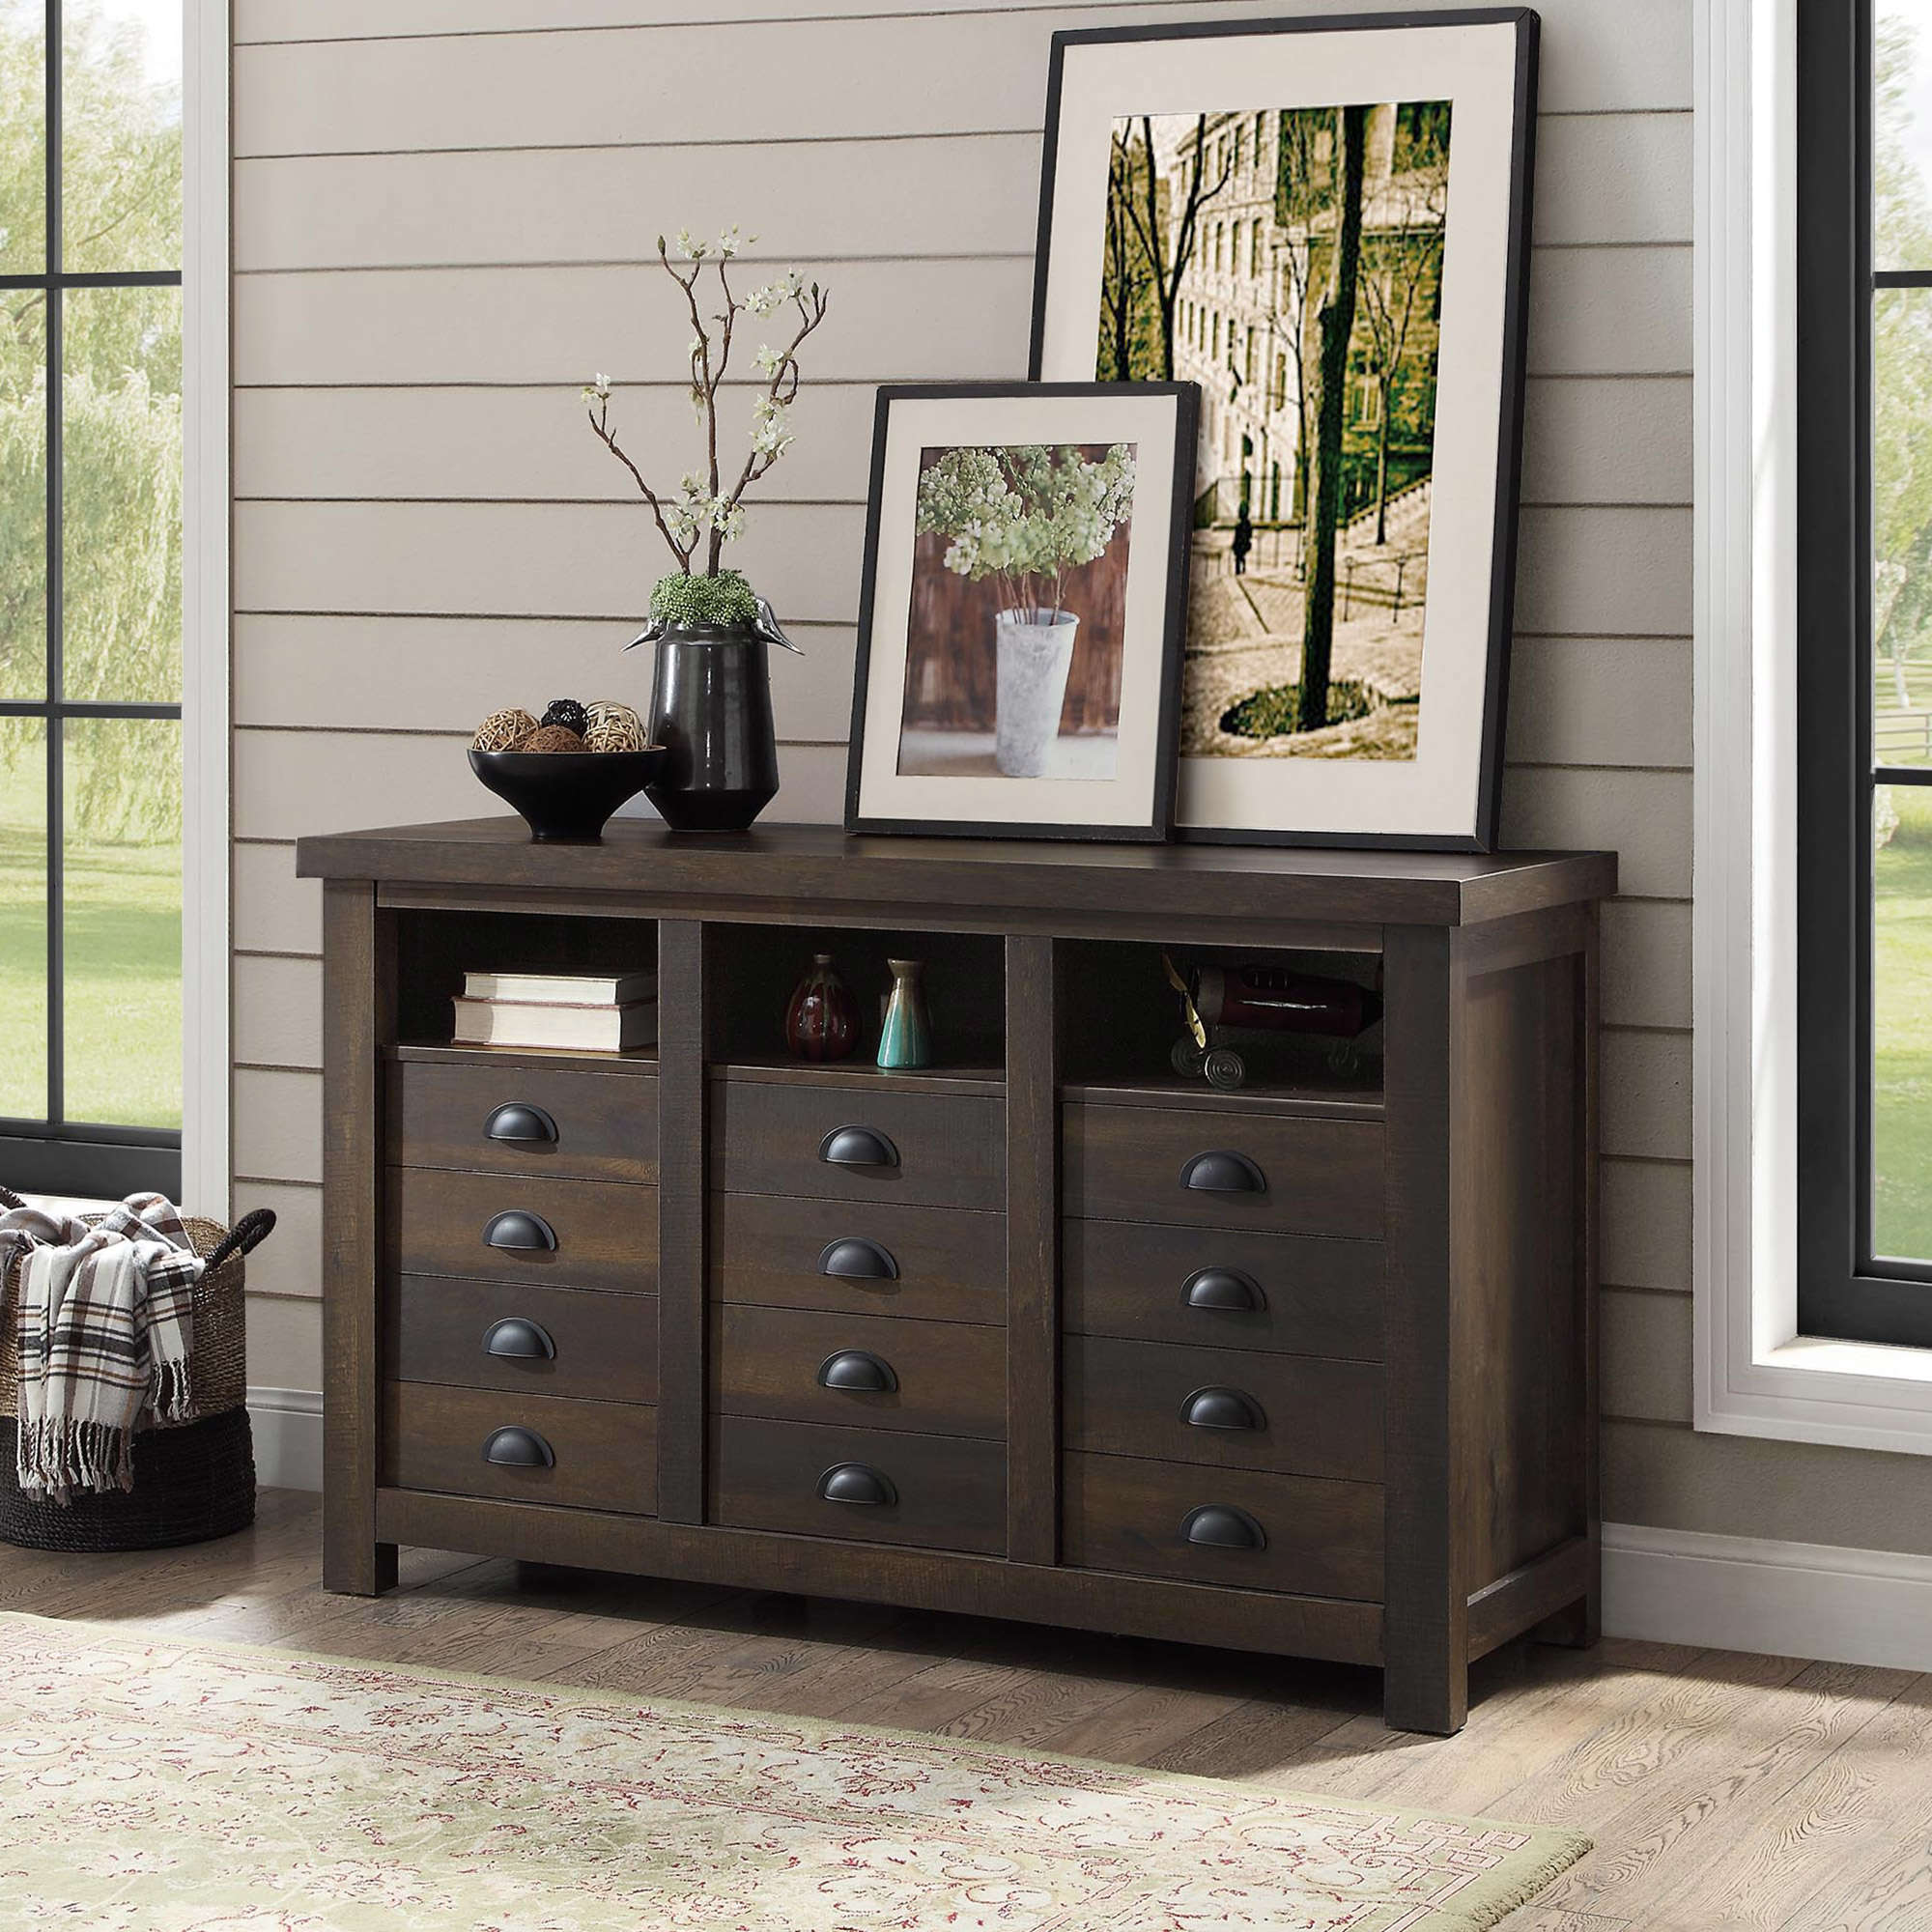 better homes and gardens granary modern farmhouse printers accent table rustic gray cabinet multiple finishes martin desk bathroom basin glass mirror dresser prefinished solid